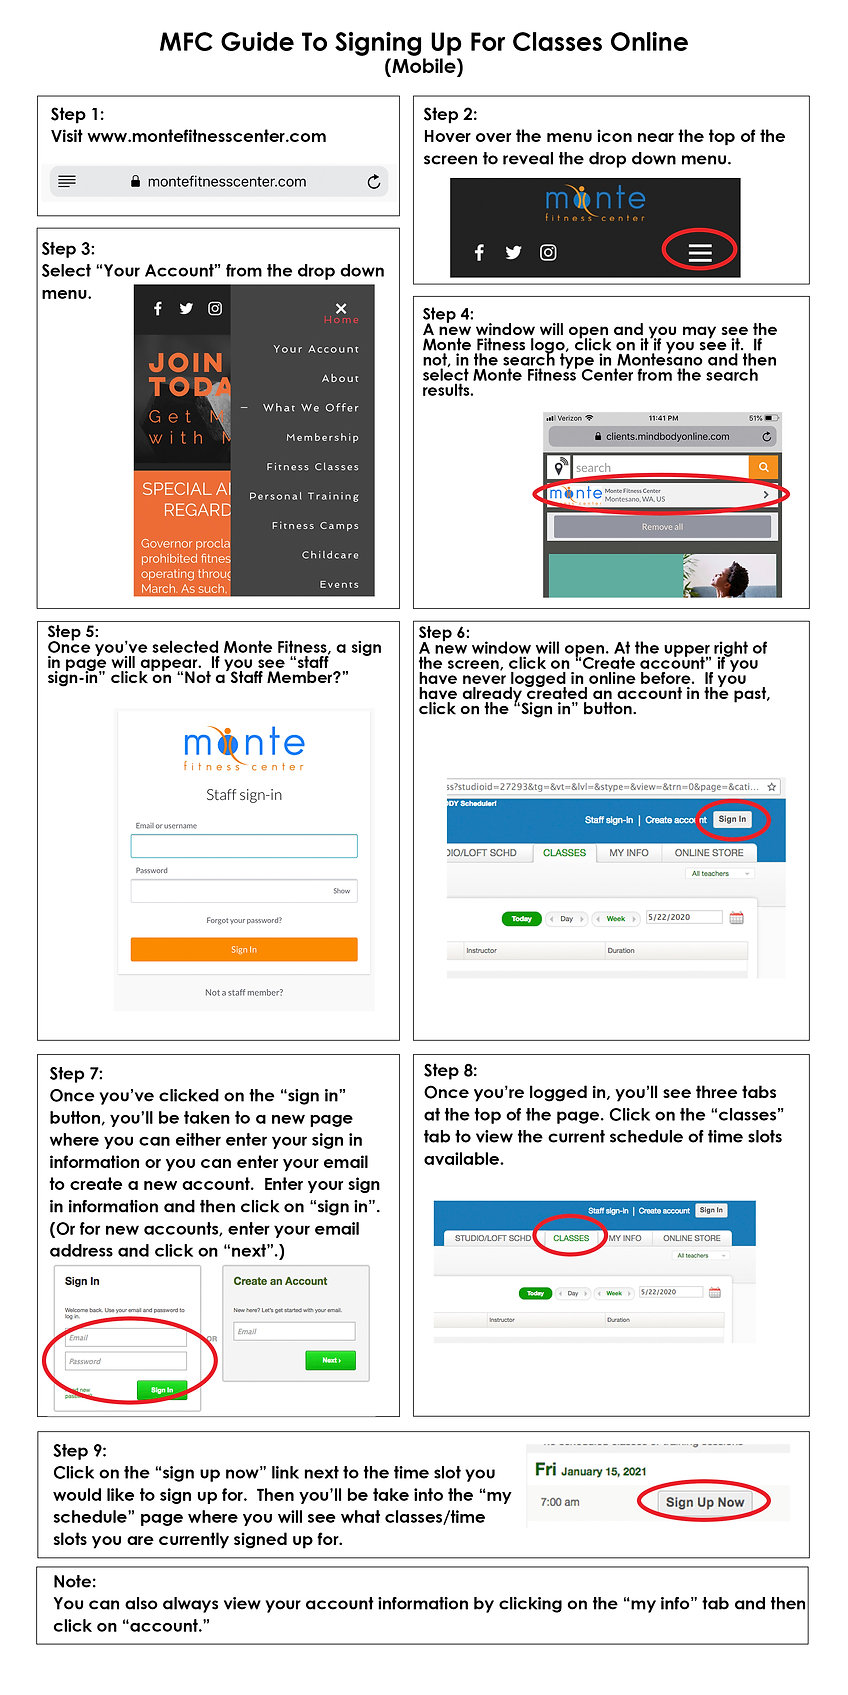 class sign up mobile guide REVISED2 1_6_